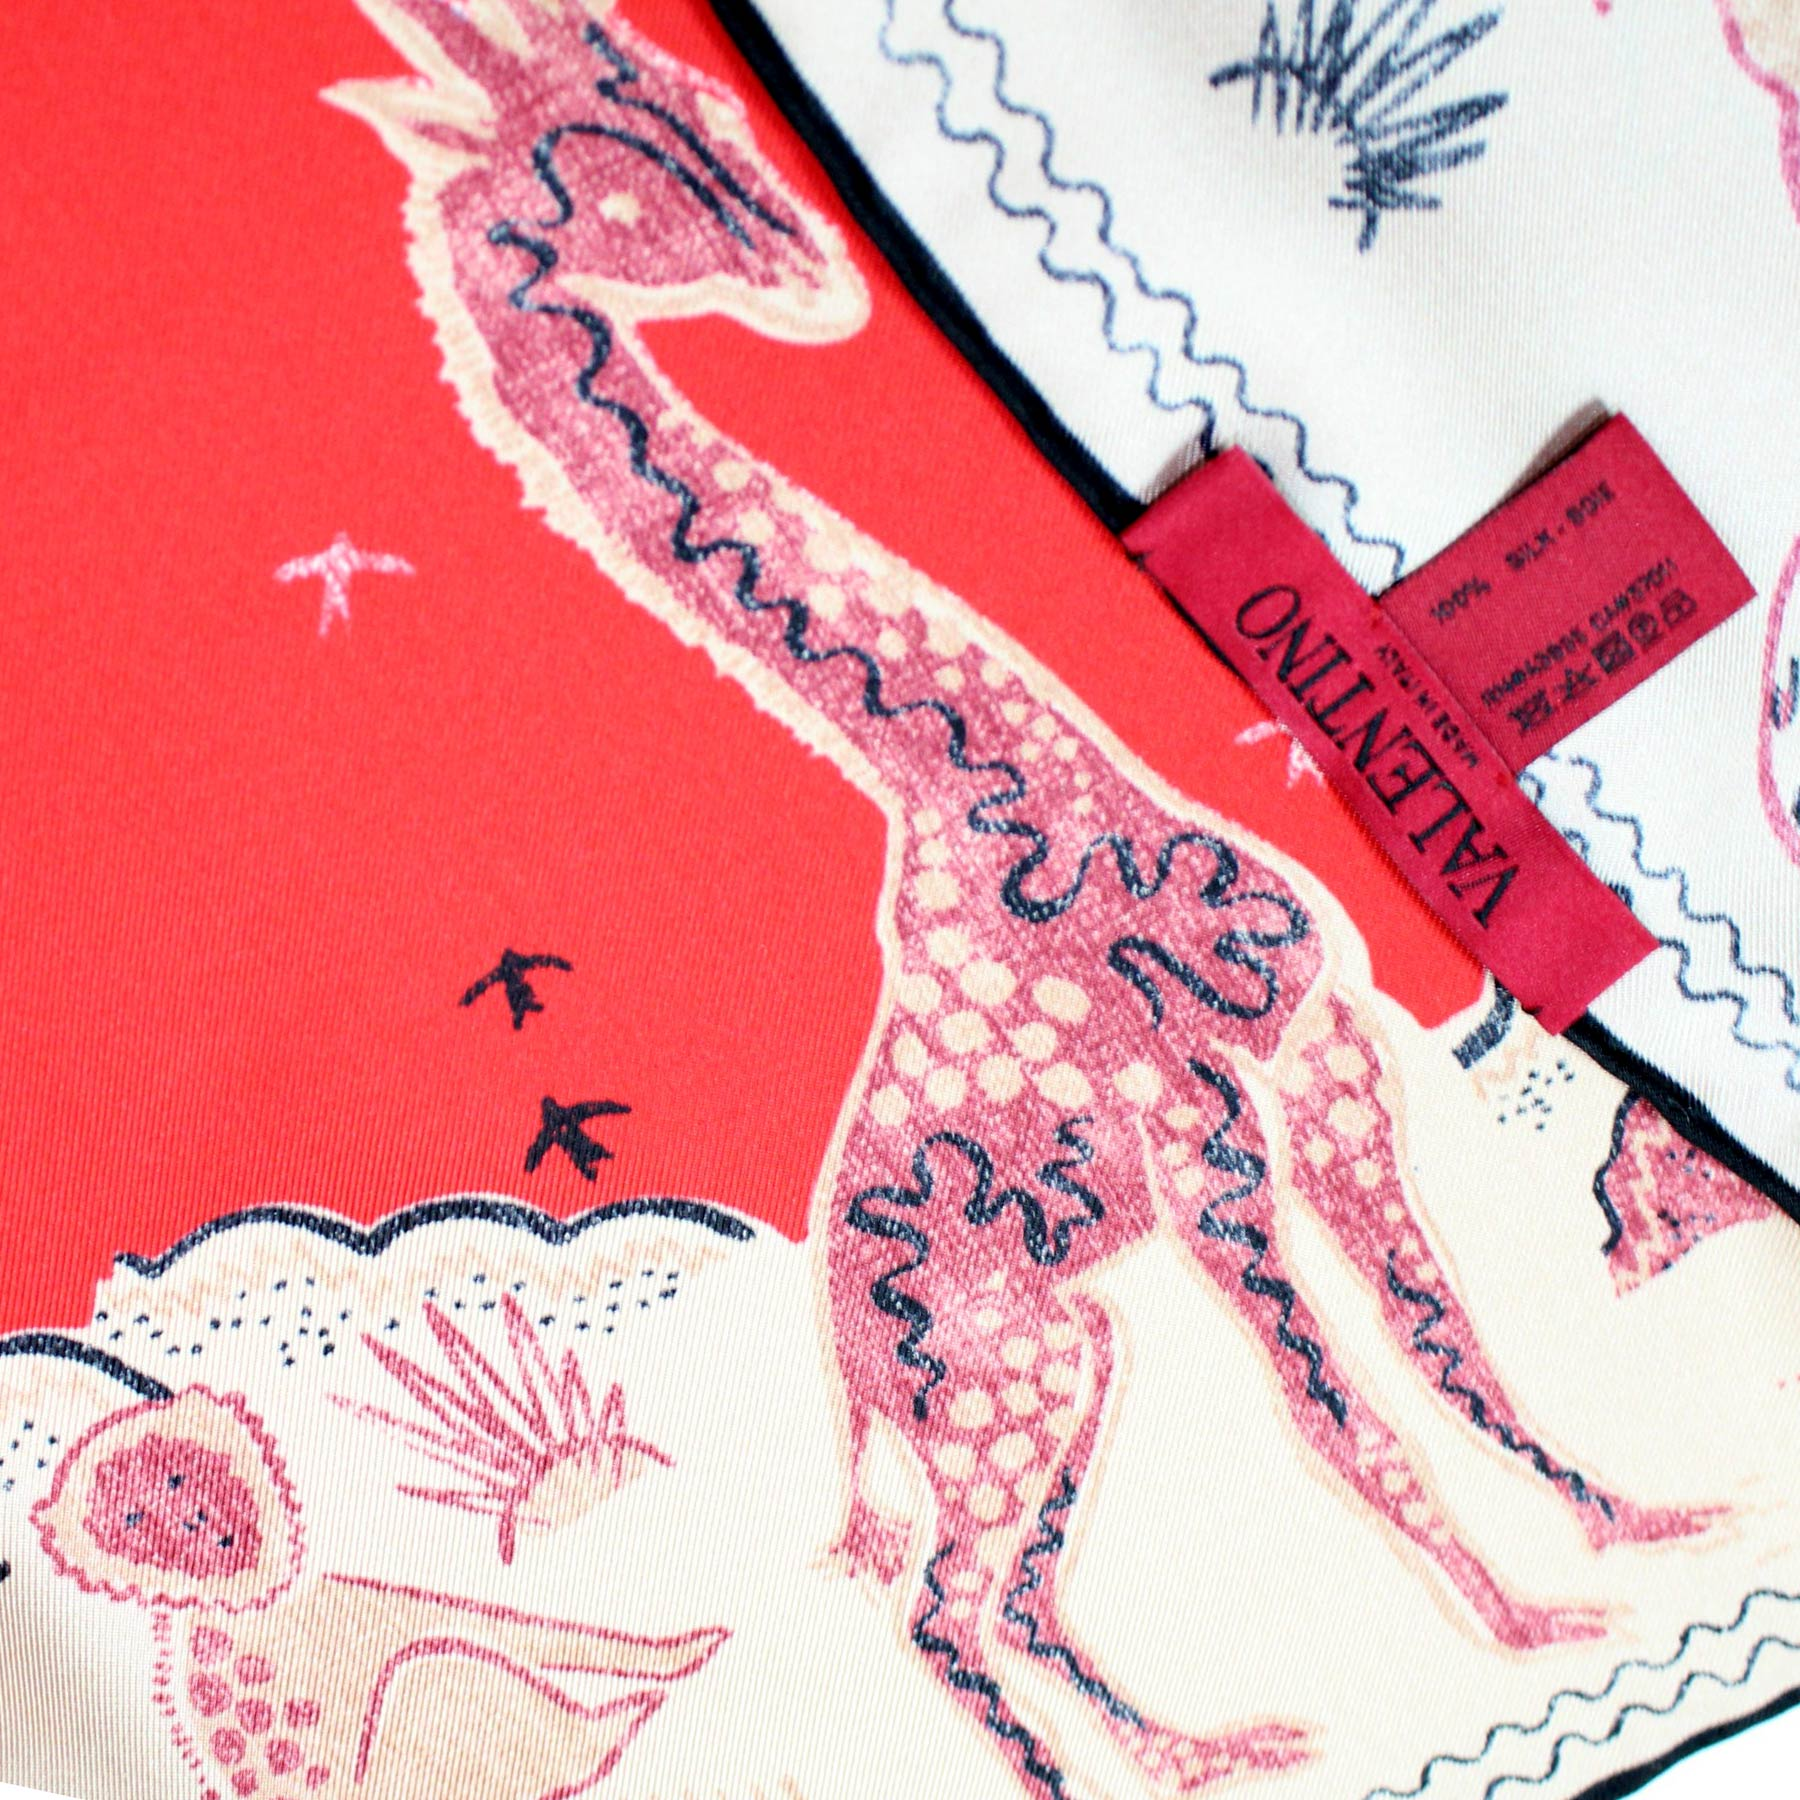 Valentino Scarf Pink Red Animal Drawings - Large Twill Silk Square Scarf BLACK FRIDAY SALE